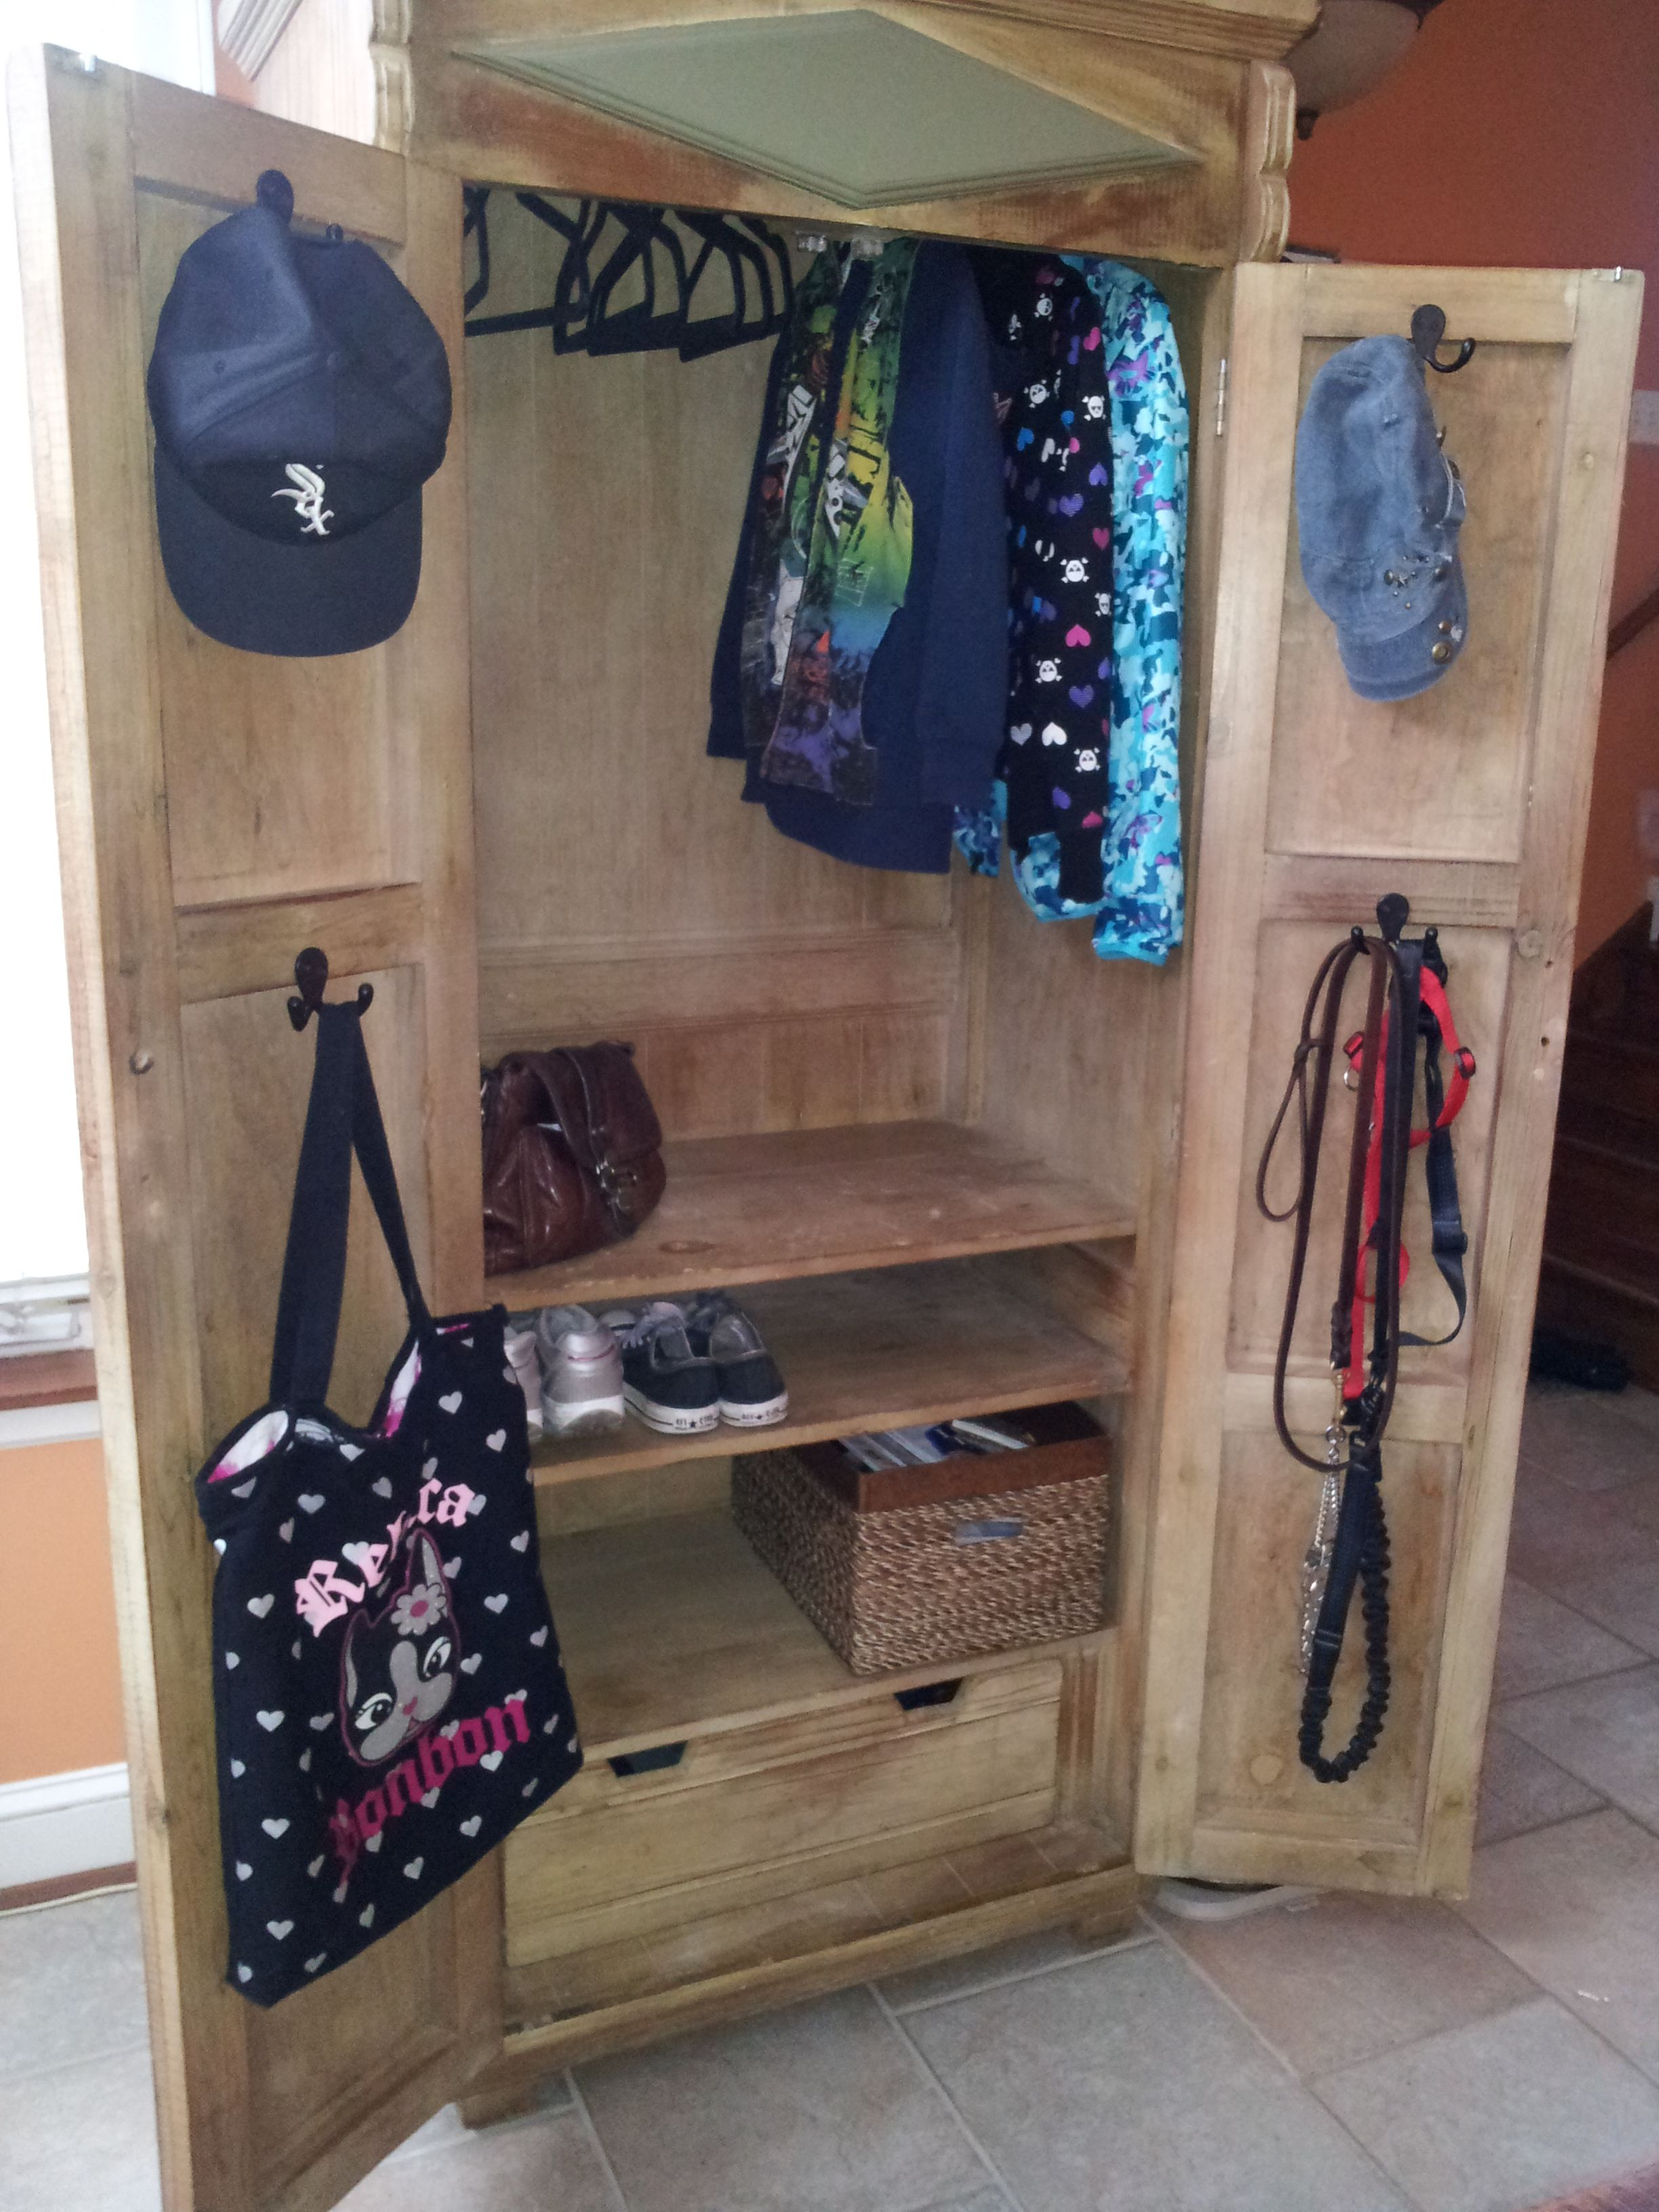 Armoire From Craigslist Repurposed As A Mini Mudroom Added